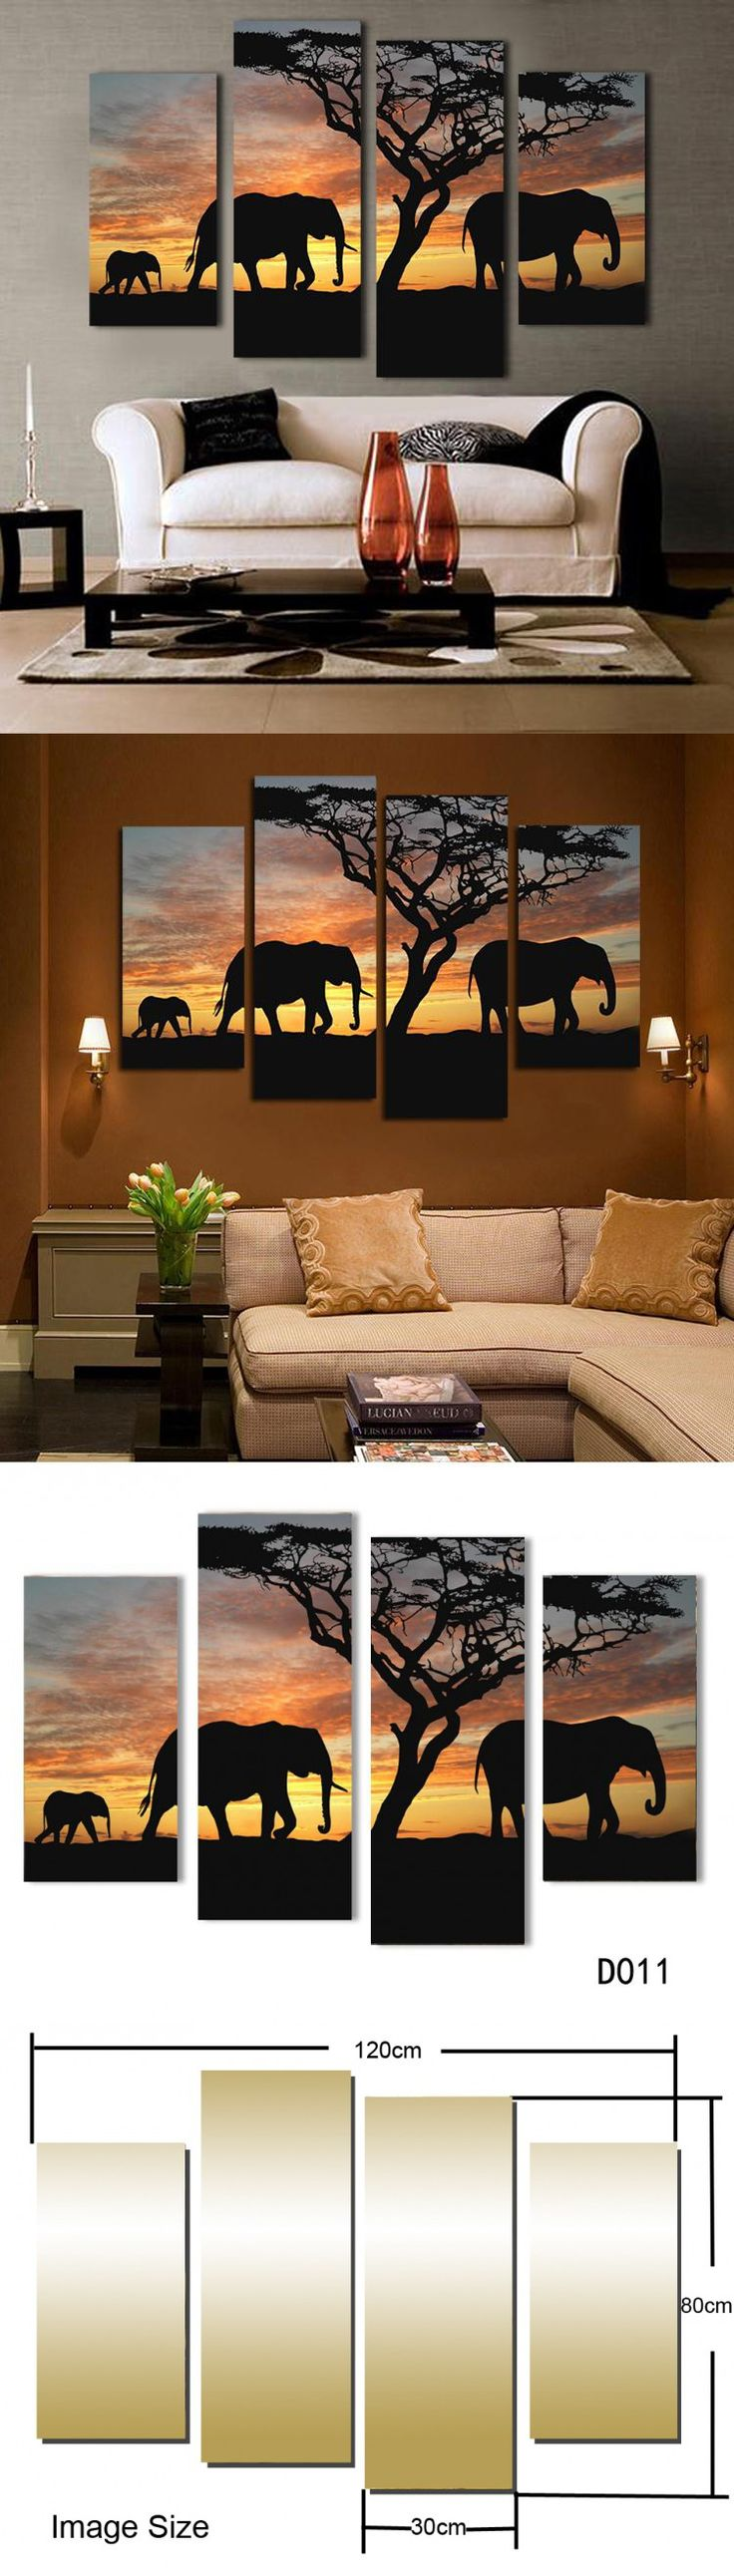 5 Ppcs Sunset Elephant Painting Canvas Wall